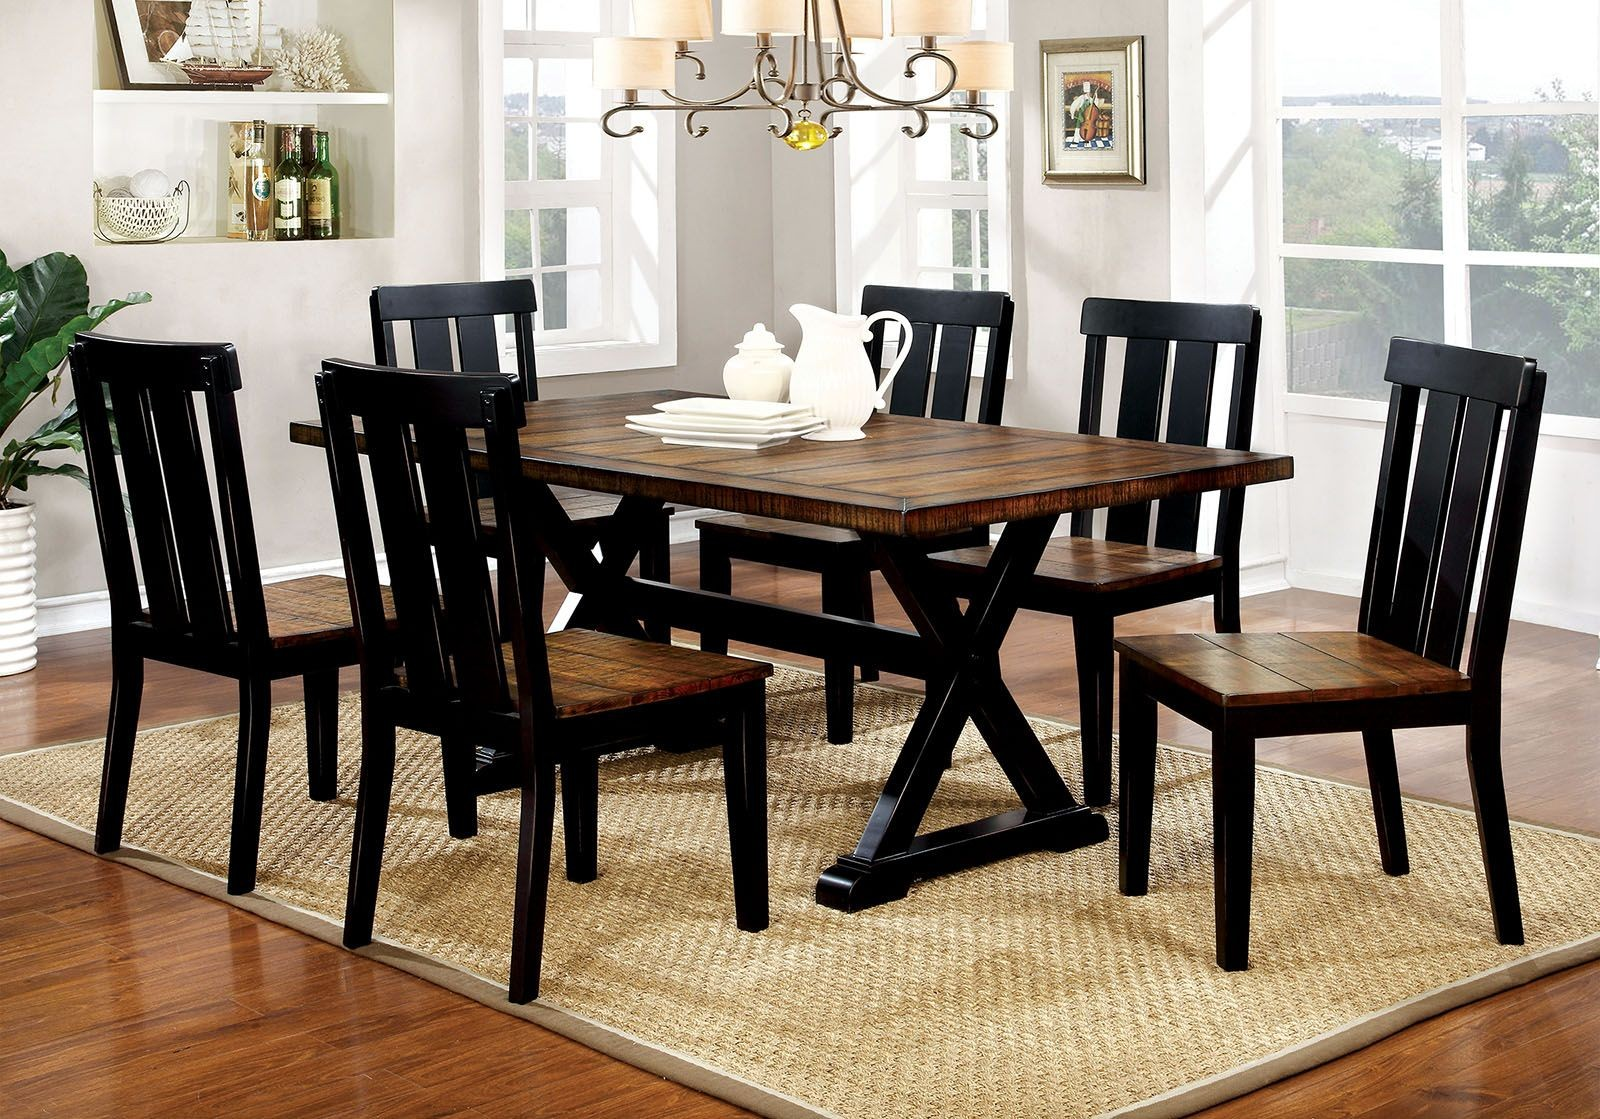 alana antique oak and black rectangular dining room set cm3668t furniture of america. Black Bedroom Furniture Sets. Home Design Ideas